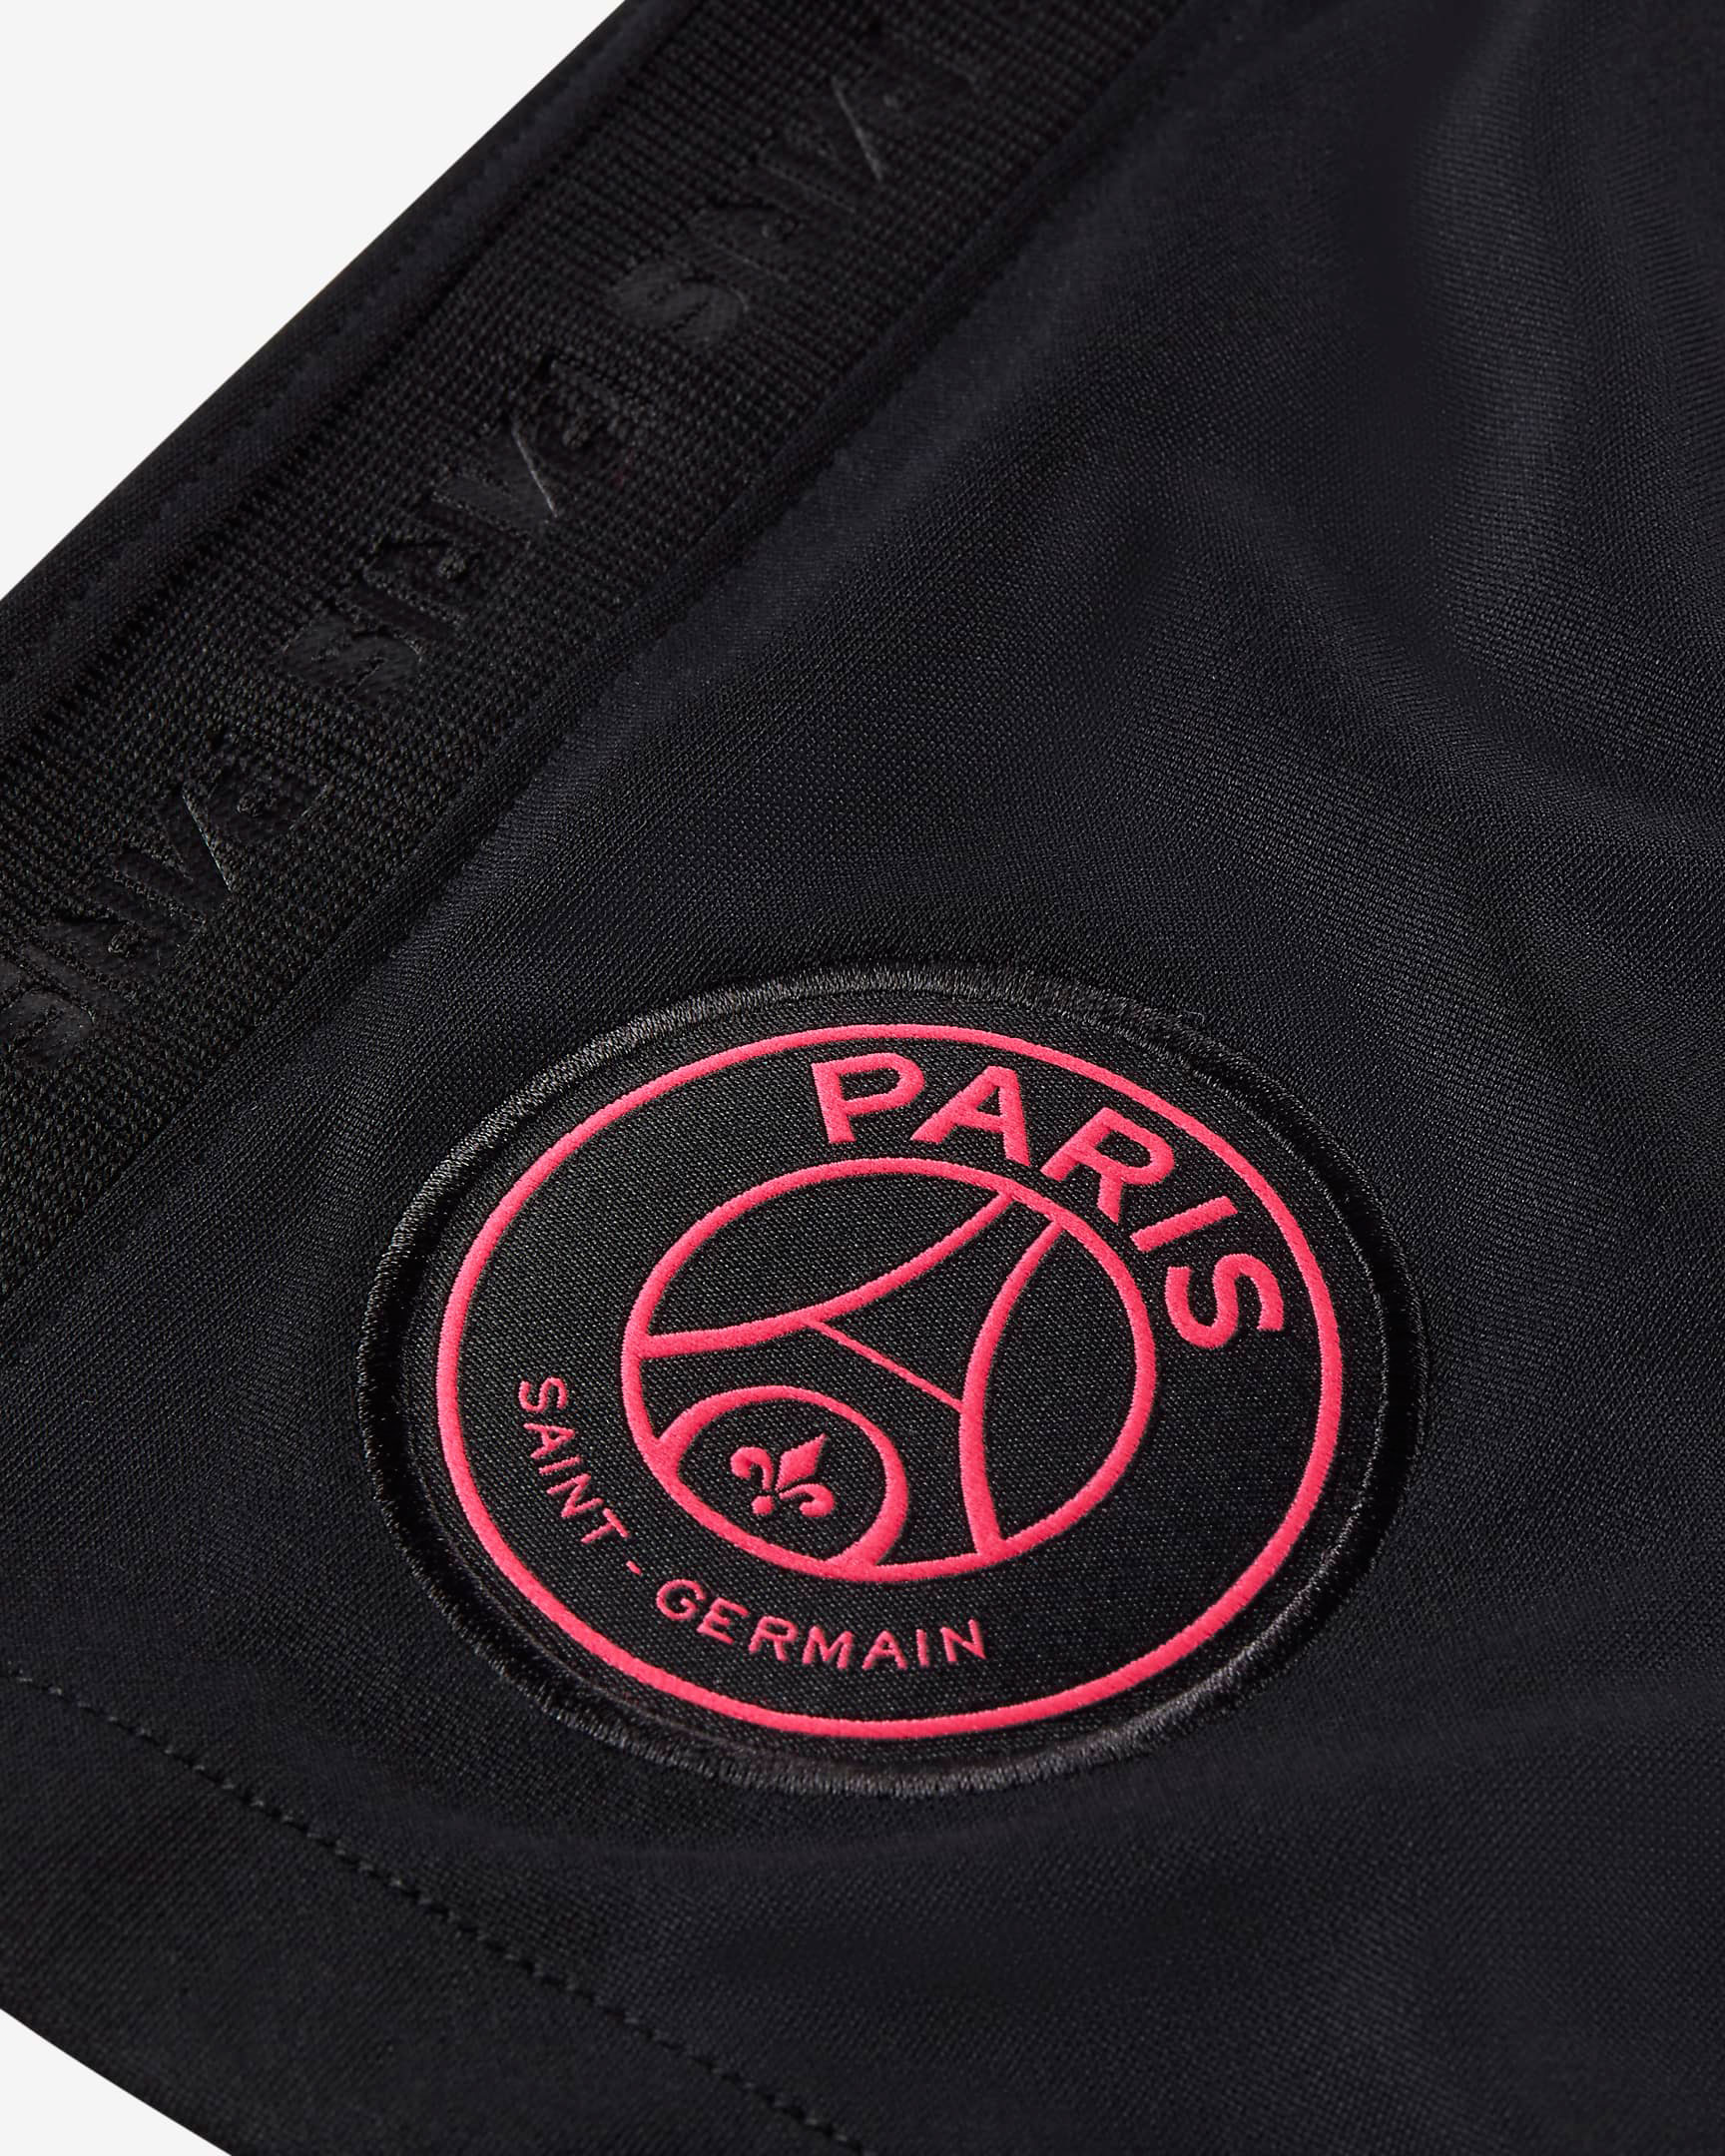 jordan-1-zoom-cmft-psg-paris-saint-germain-shorts-3